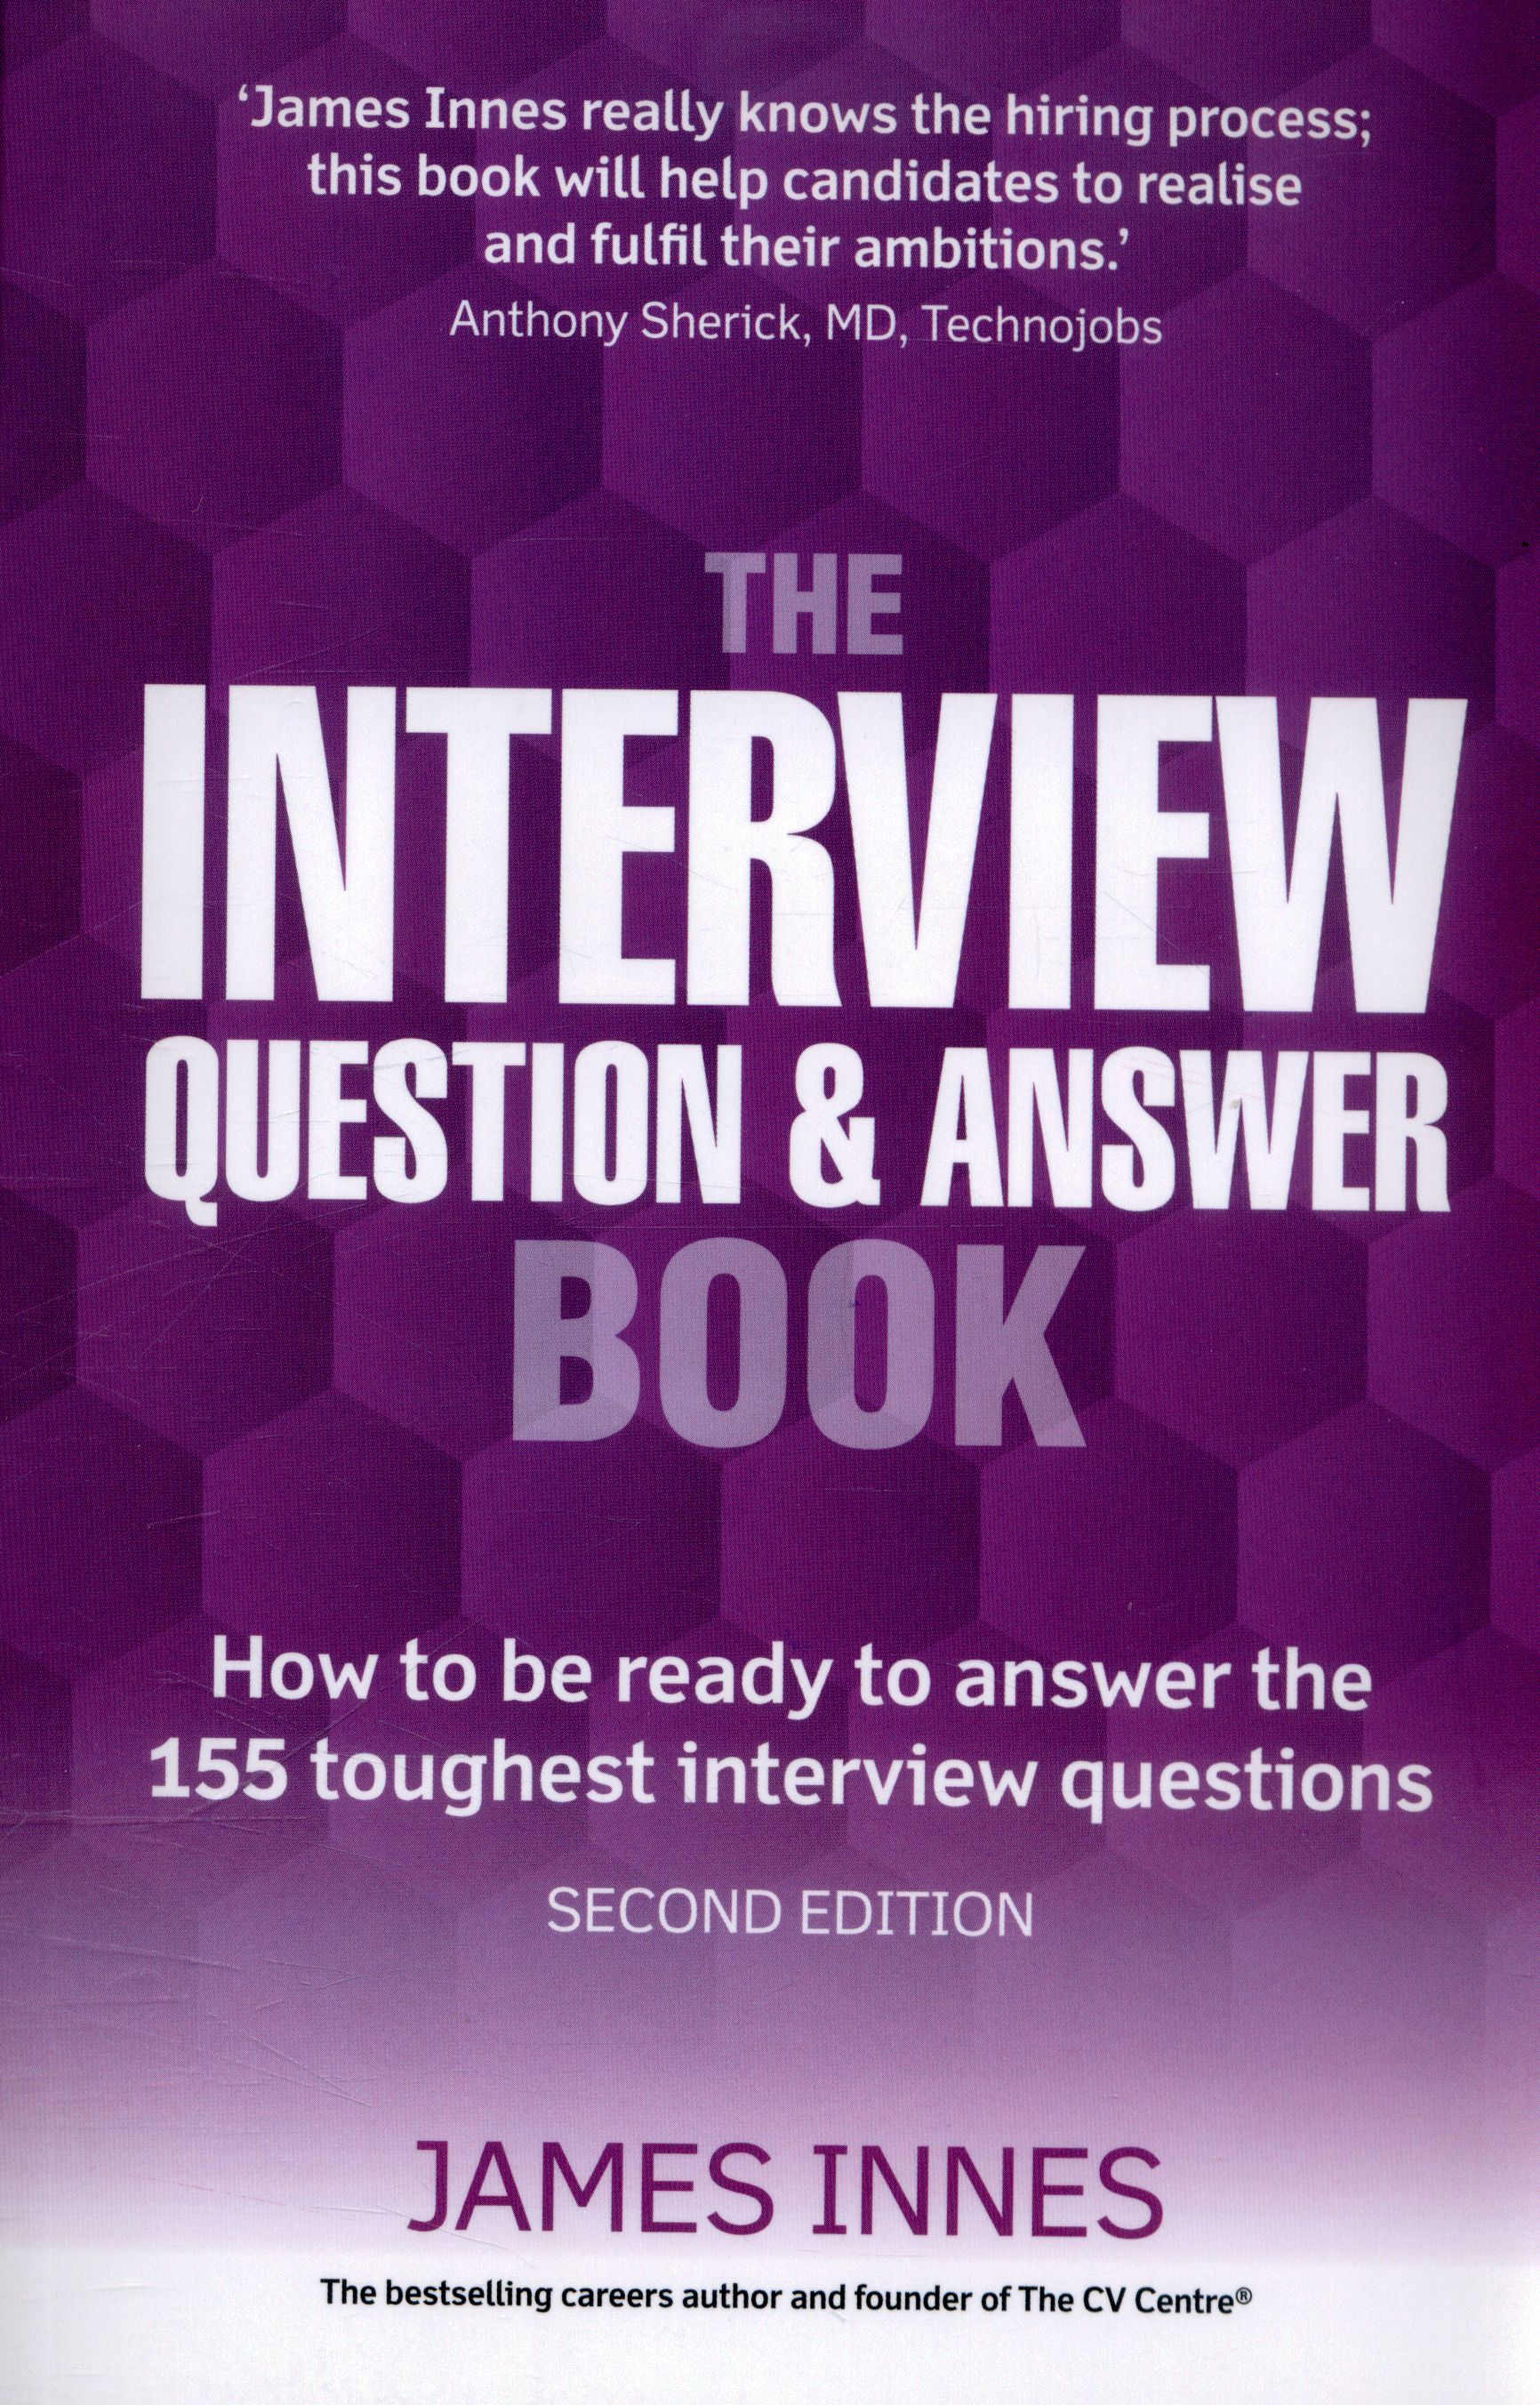 Written by one of the UK's leading careers experts, this guide supplies ideal responses to interview questions, so that you are seen as the best candidate for the job.